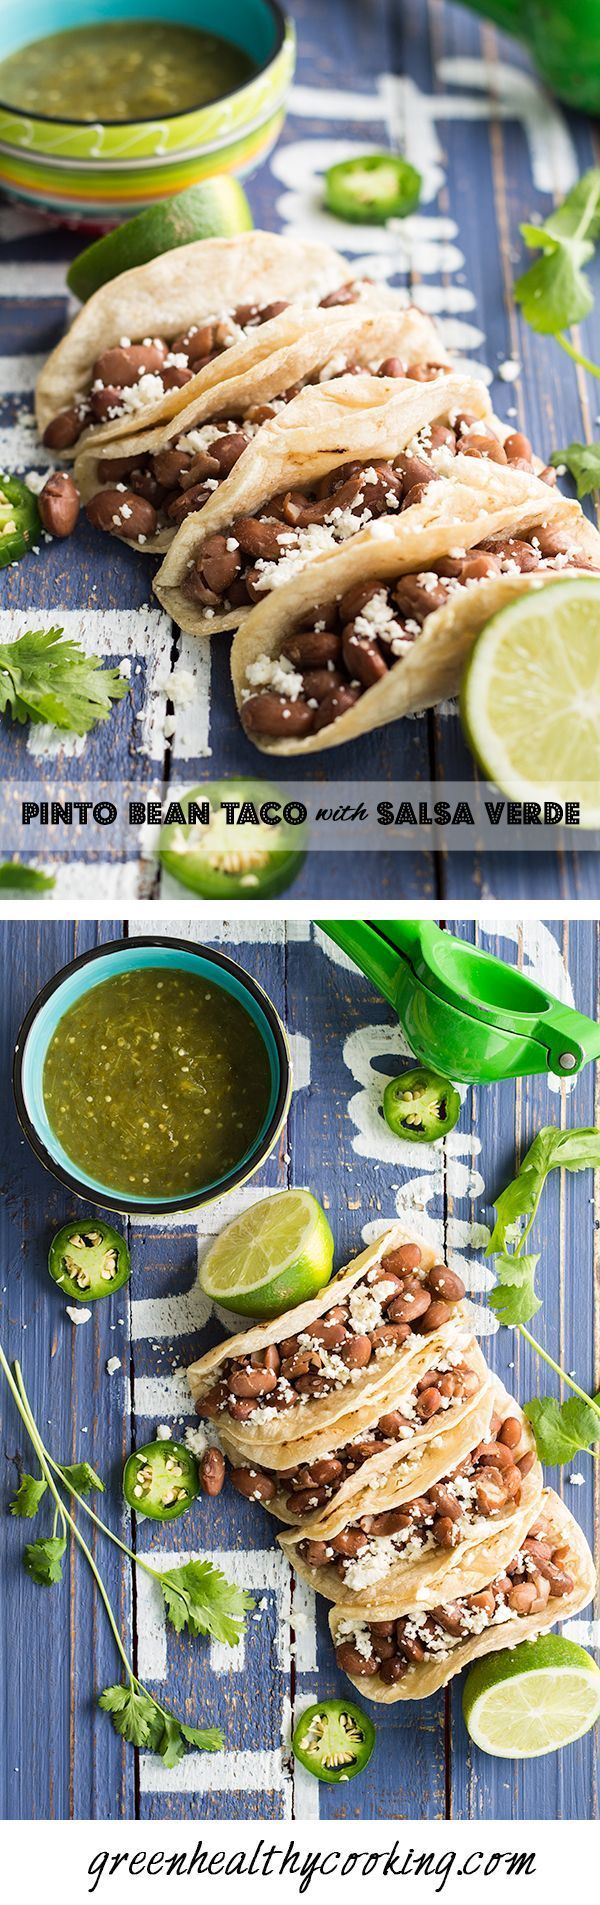 Pinto Bean Taco with Salsa Verde, a recipe worth saving for everyone in love with Mexican cuisine.